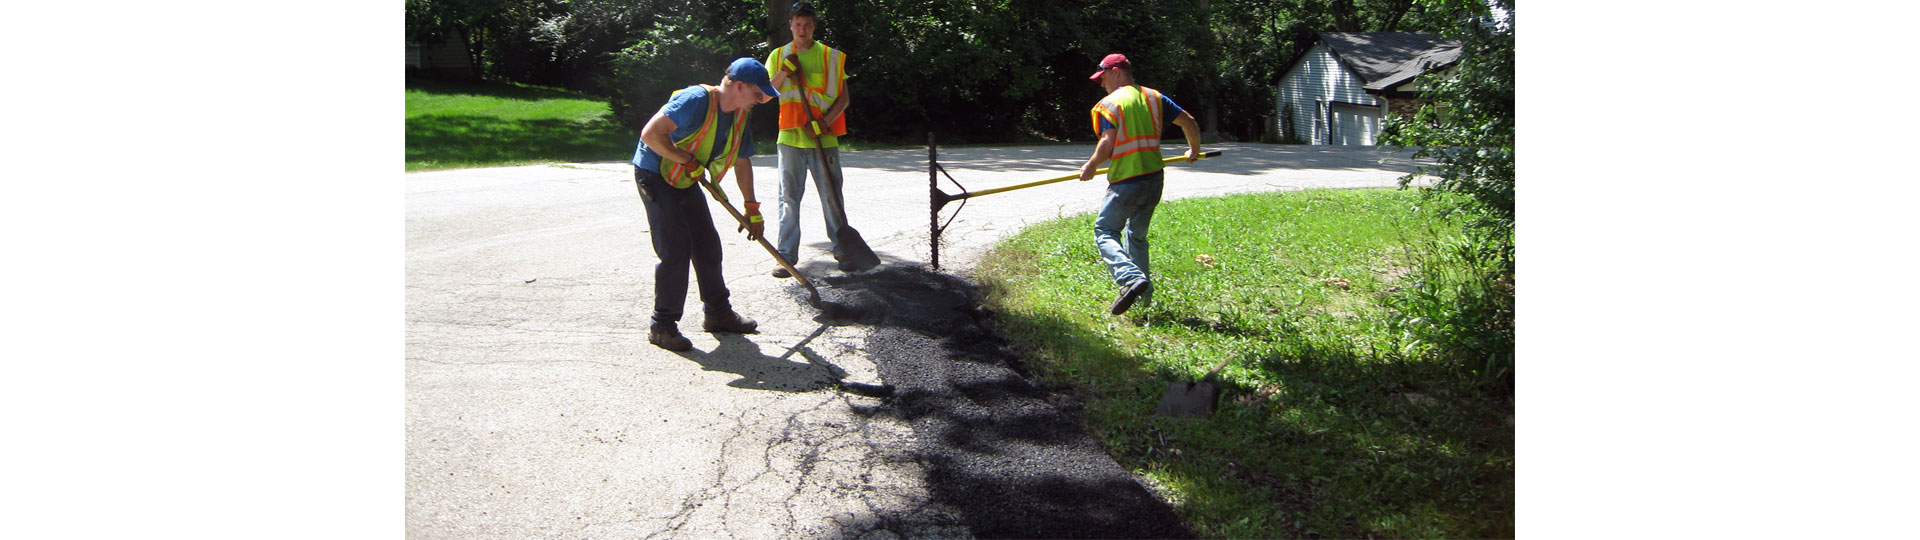 Nunda Road District Paving Work